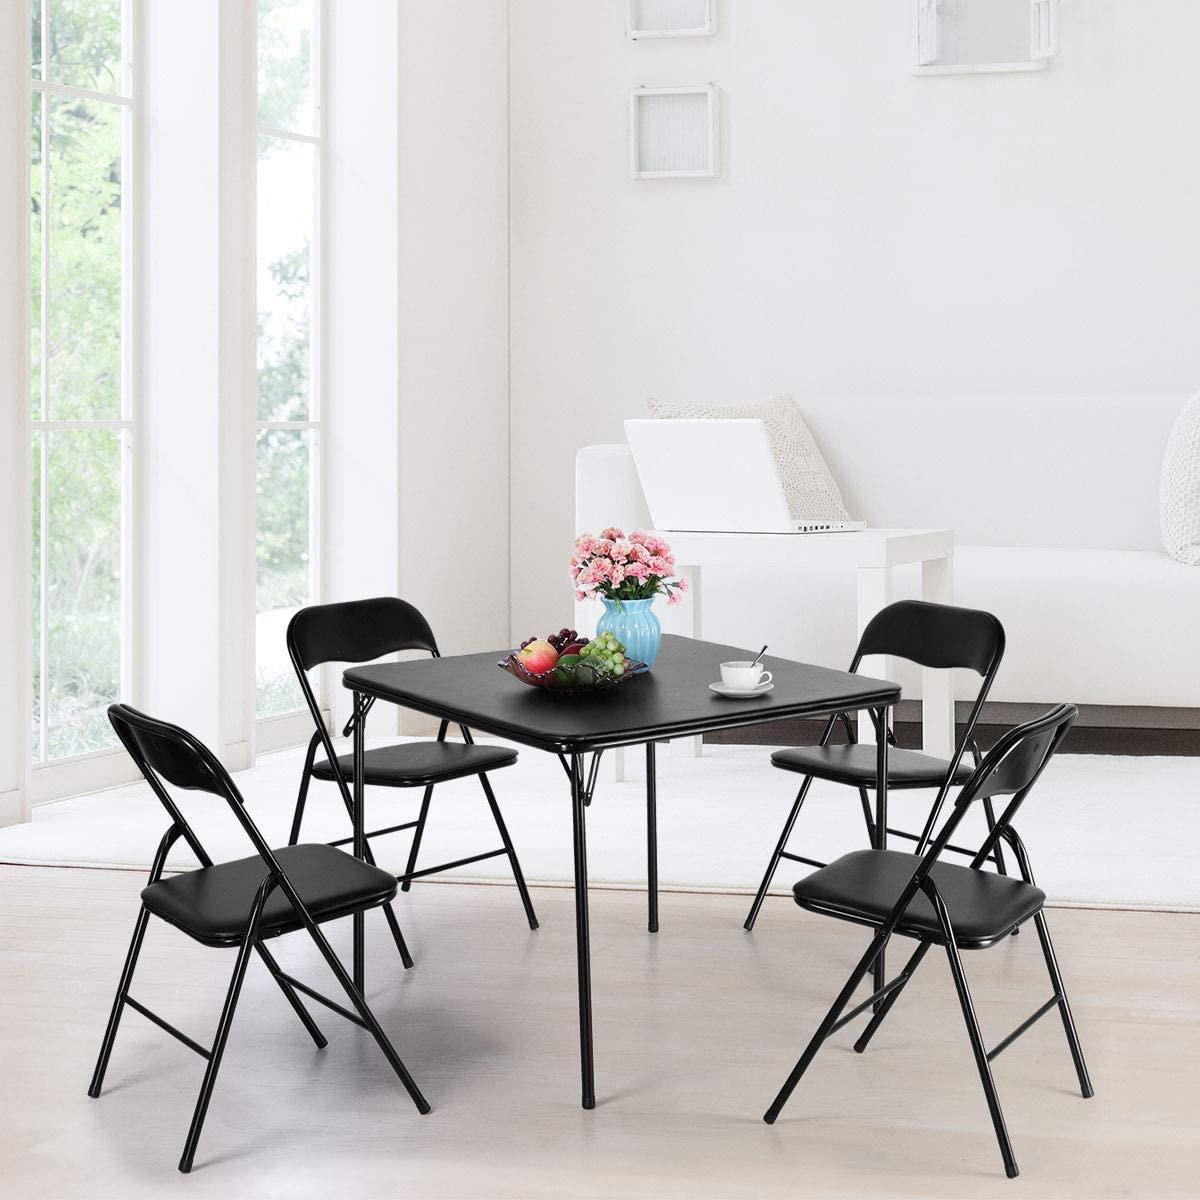 5-Piece Folding Table and Chair Set Multipurpose Kitchen Dining Games Table w Padded Seat